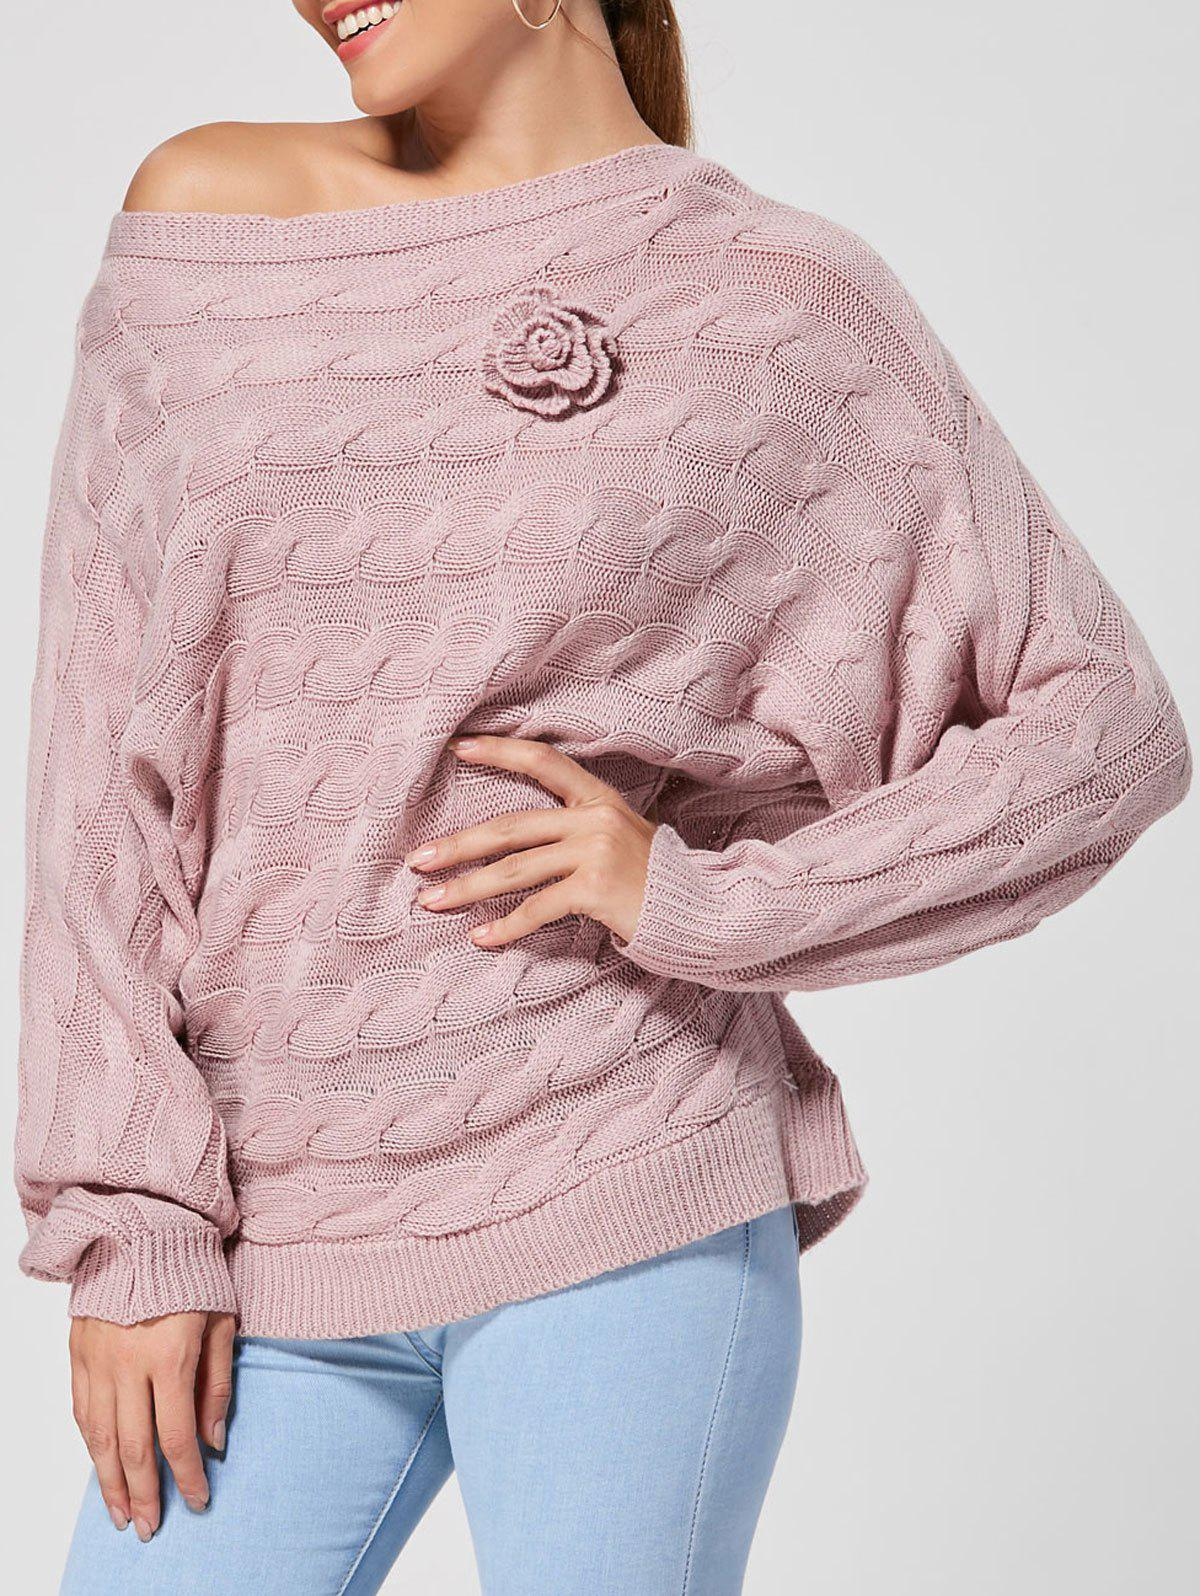 Dolman Sleeve Floral Cable Knit Sweater цена 2017